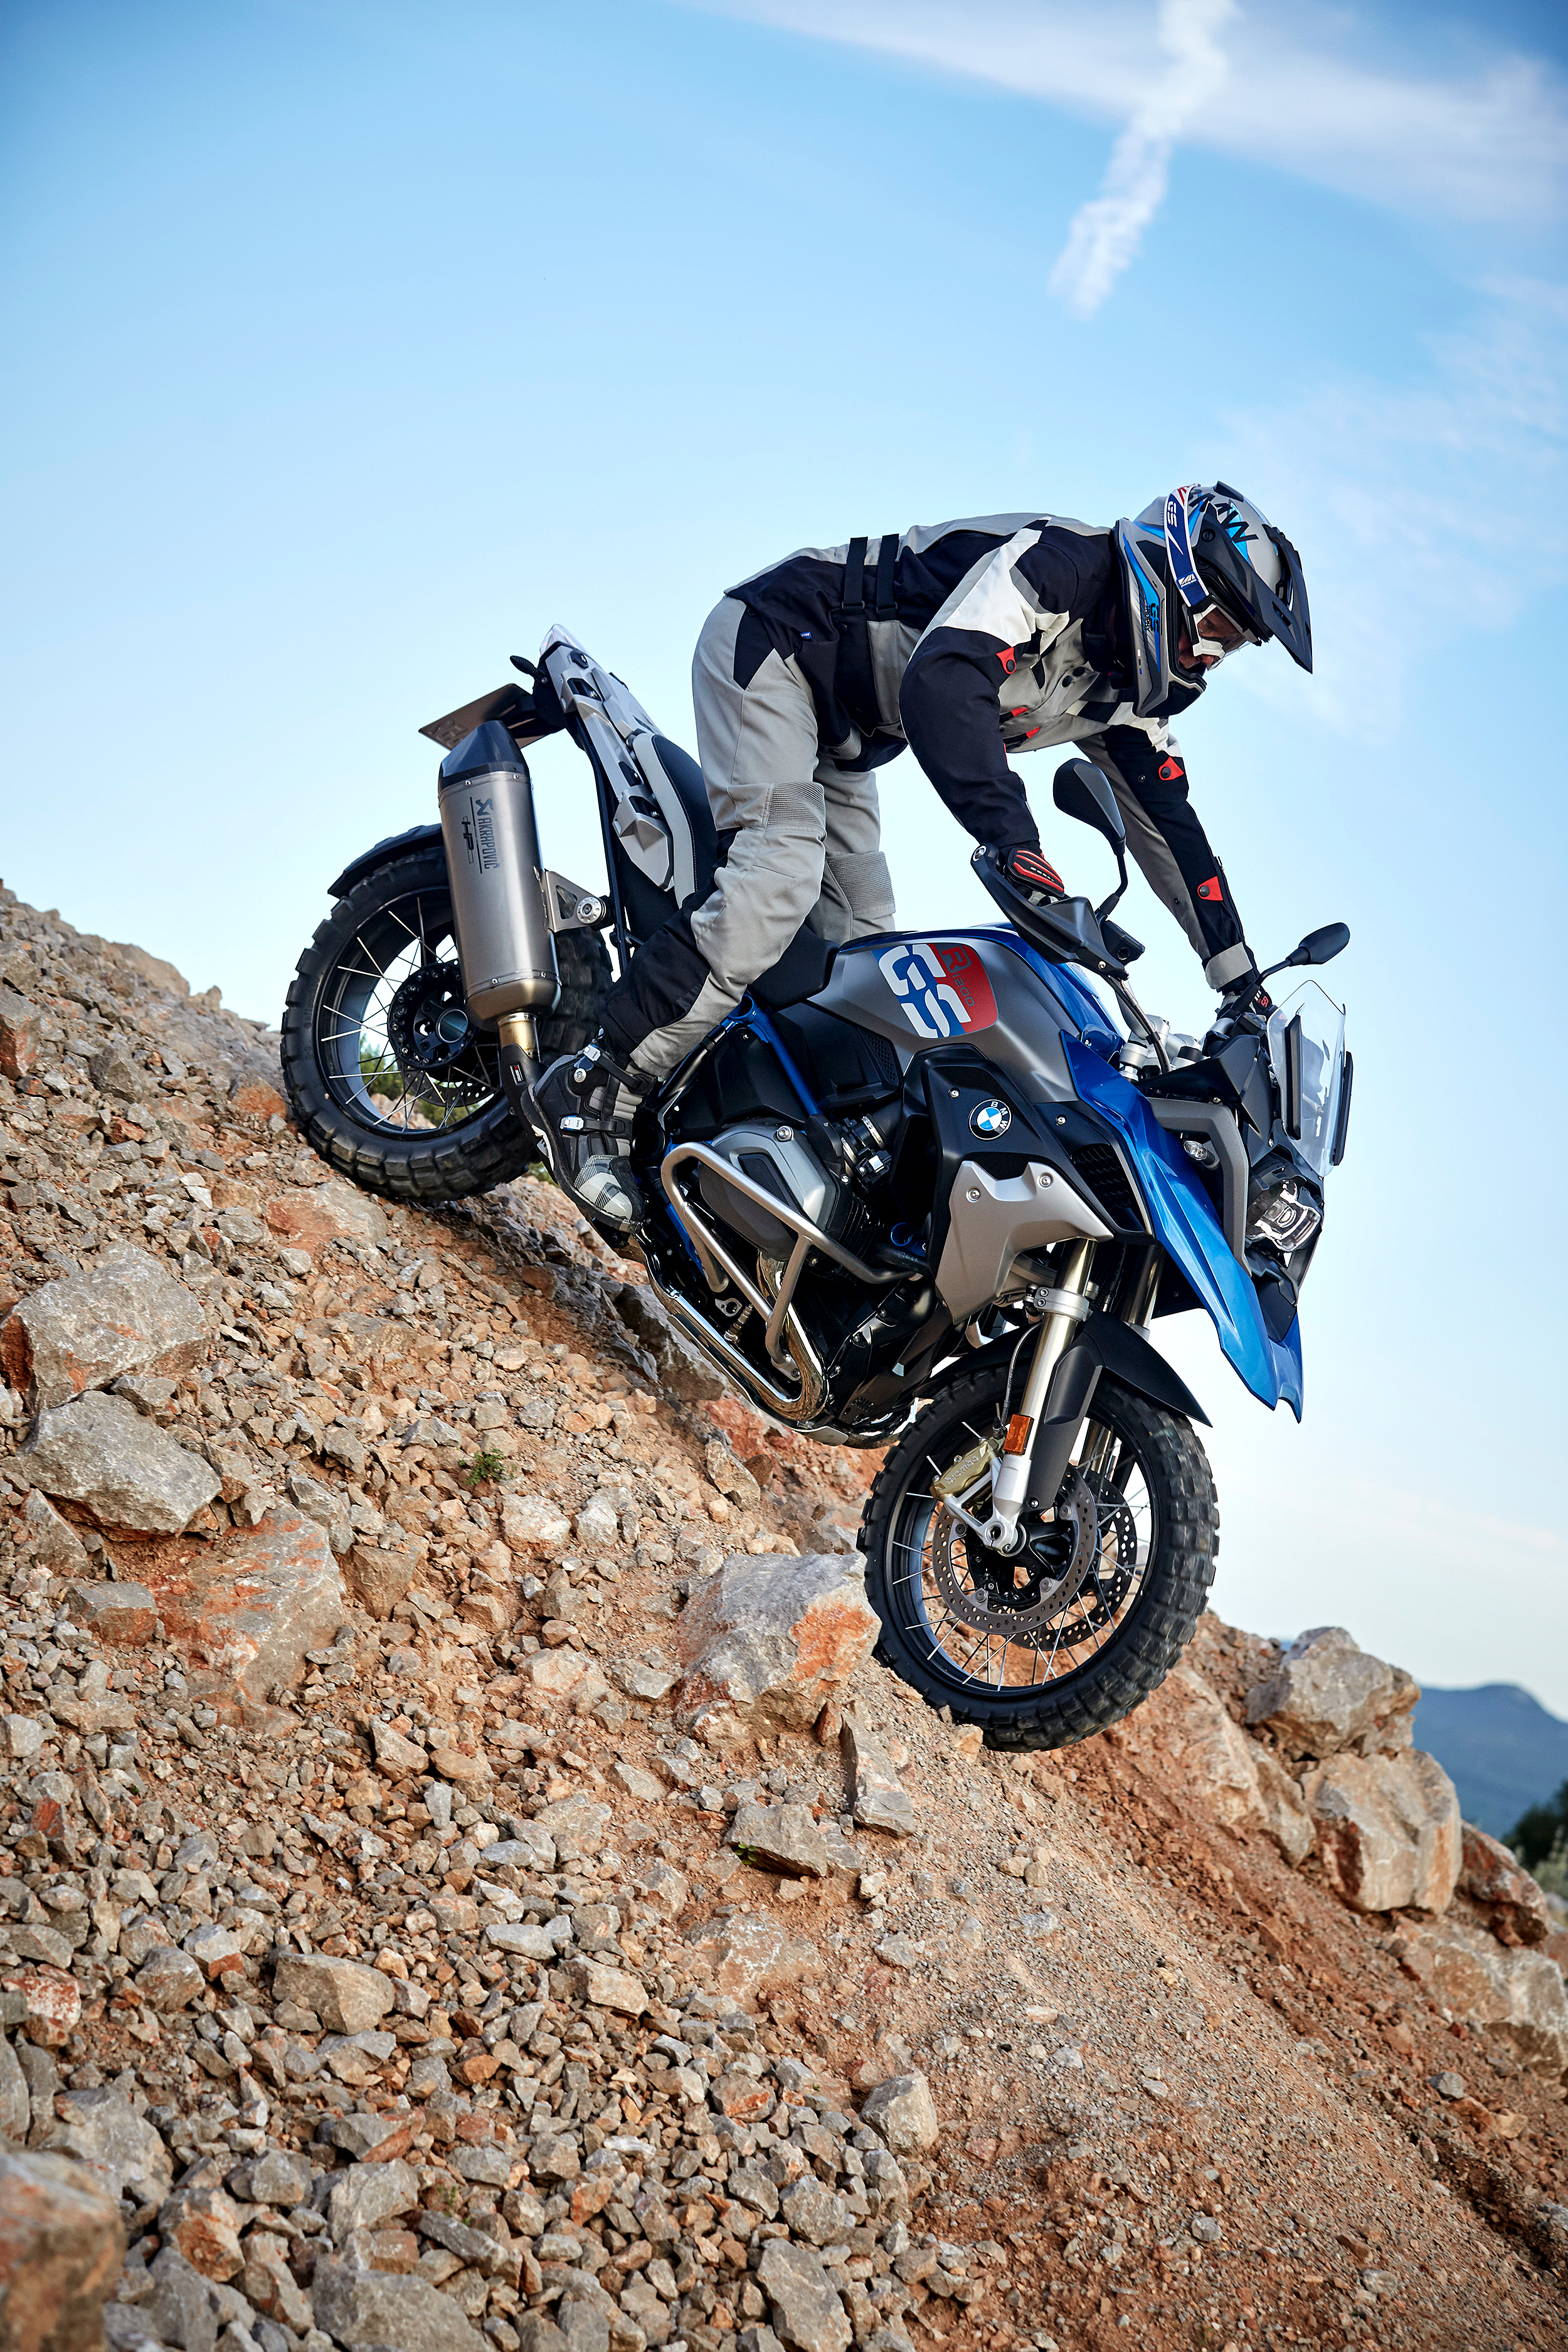 Bmw R1200gs Adventure Triple Black 2017 Review: All New For 2017 With Rallye